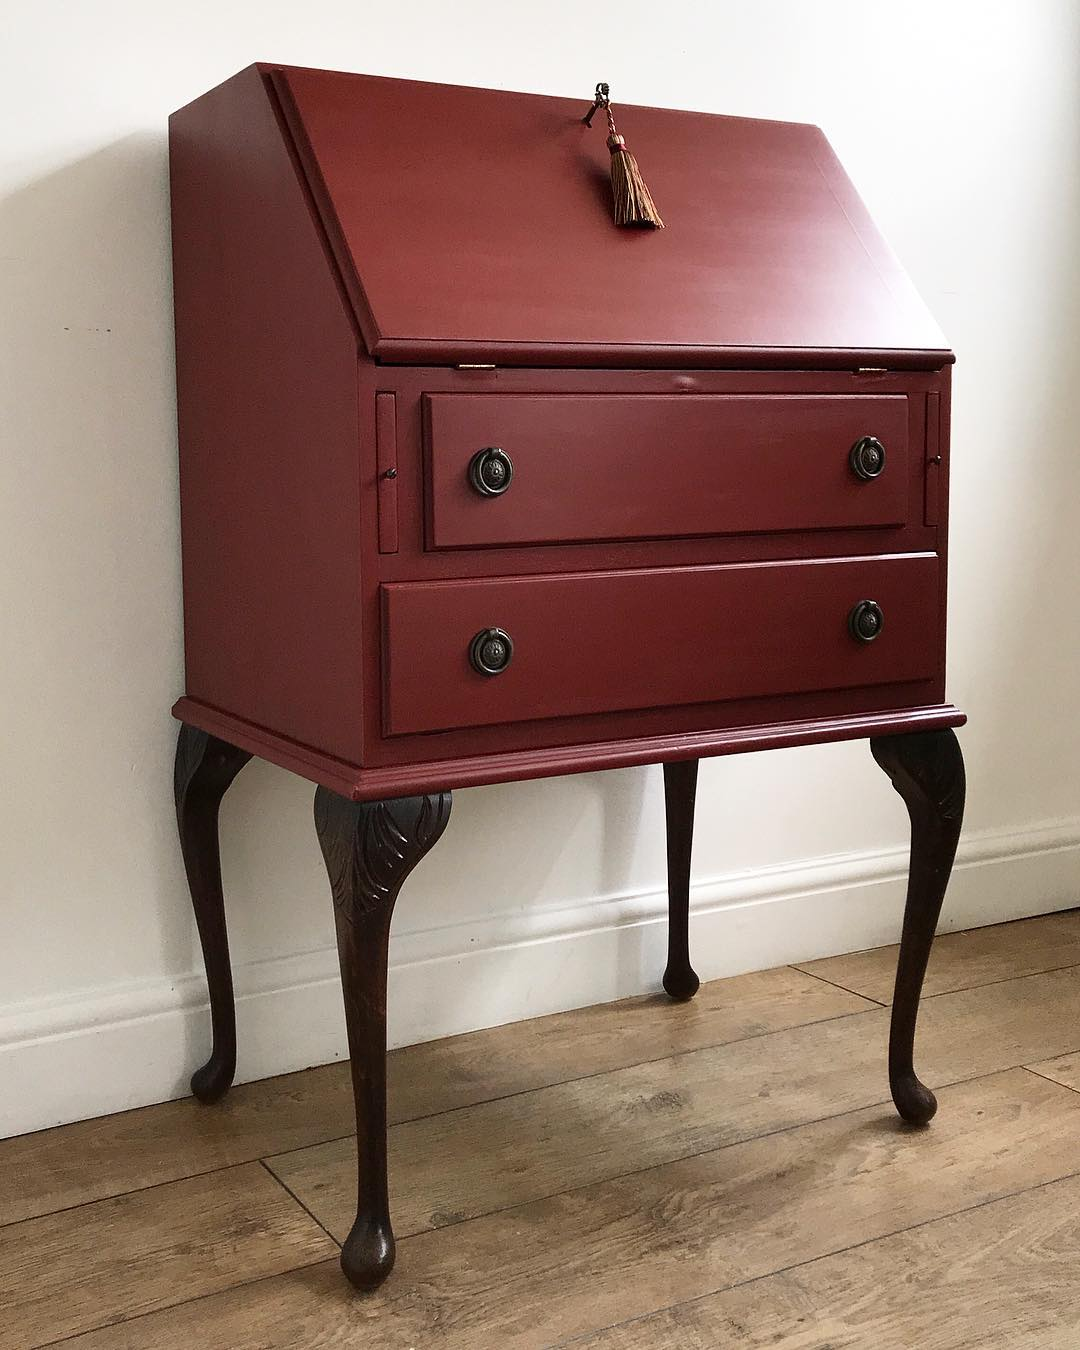 Forgotten Gems UK Red Painted Bureau